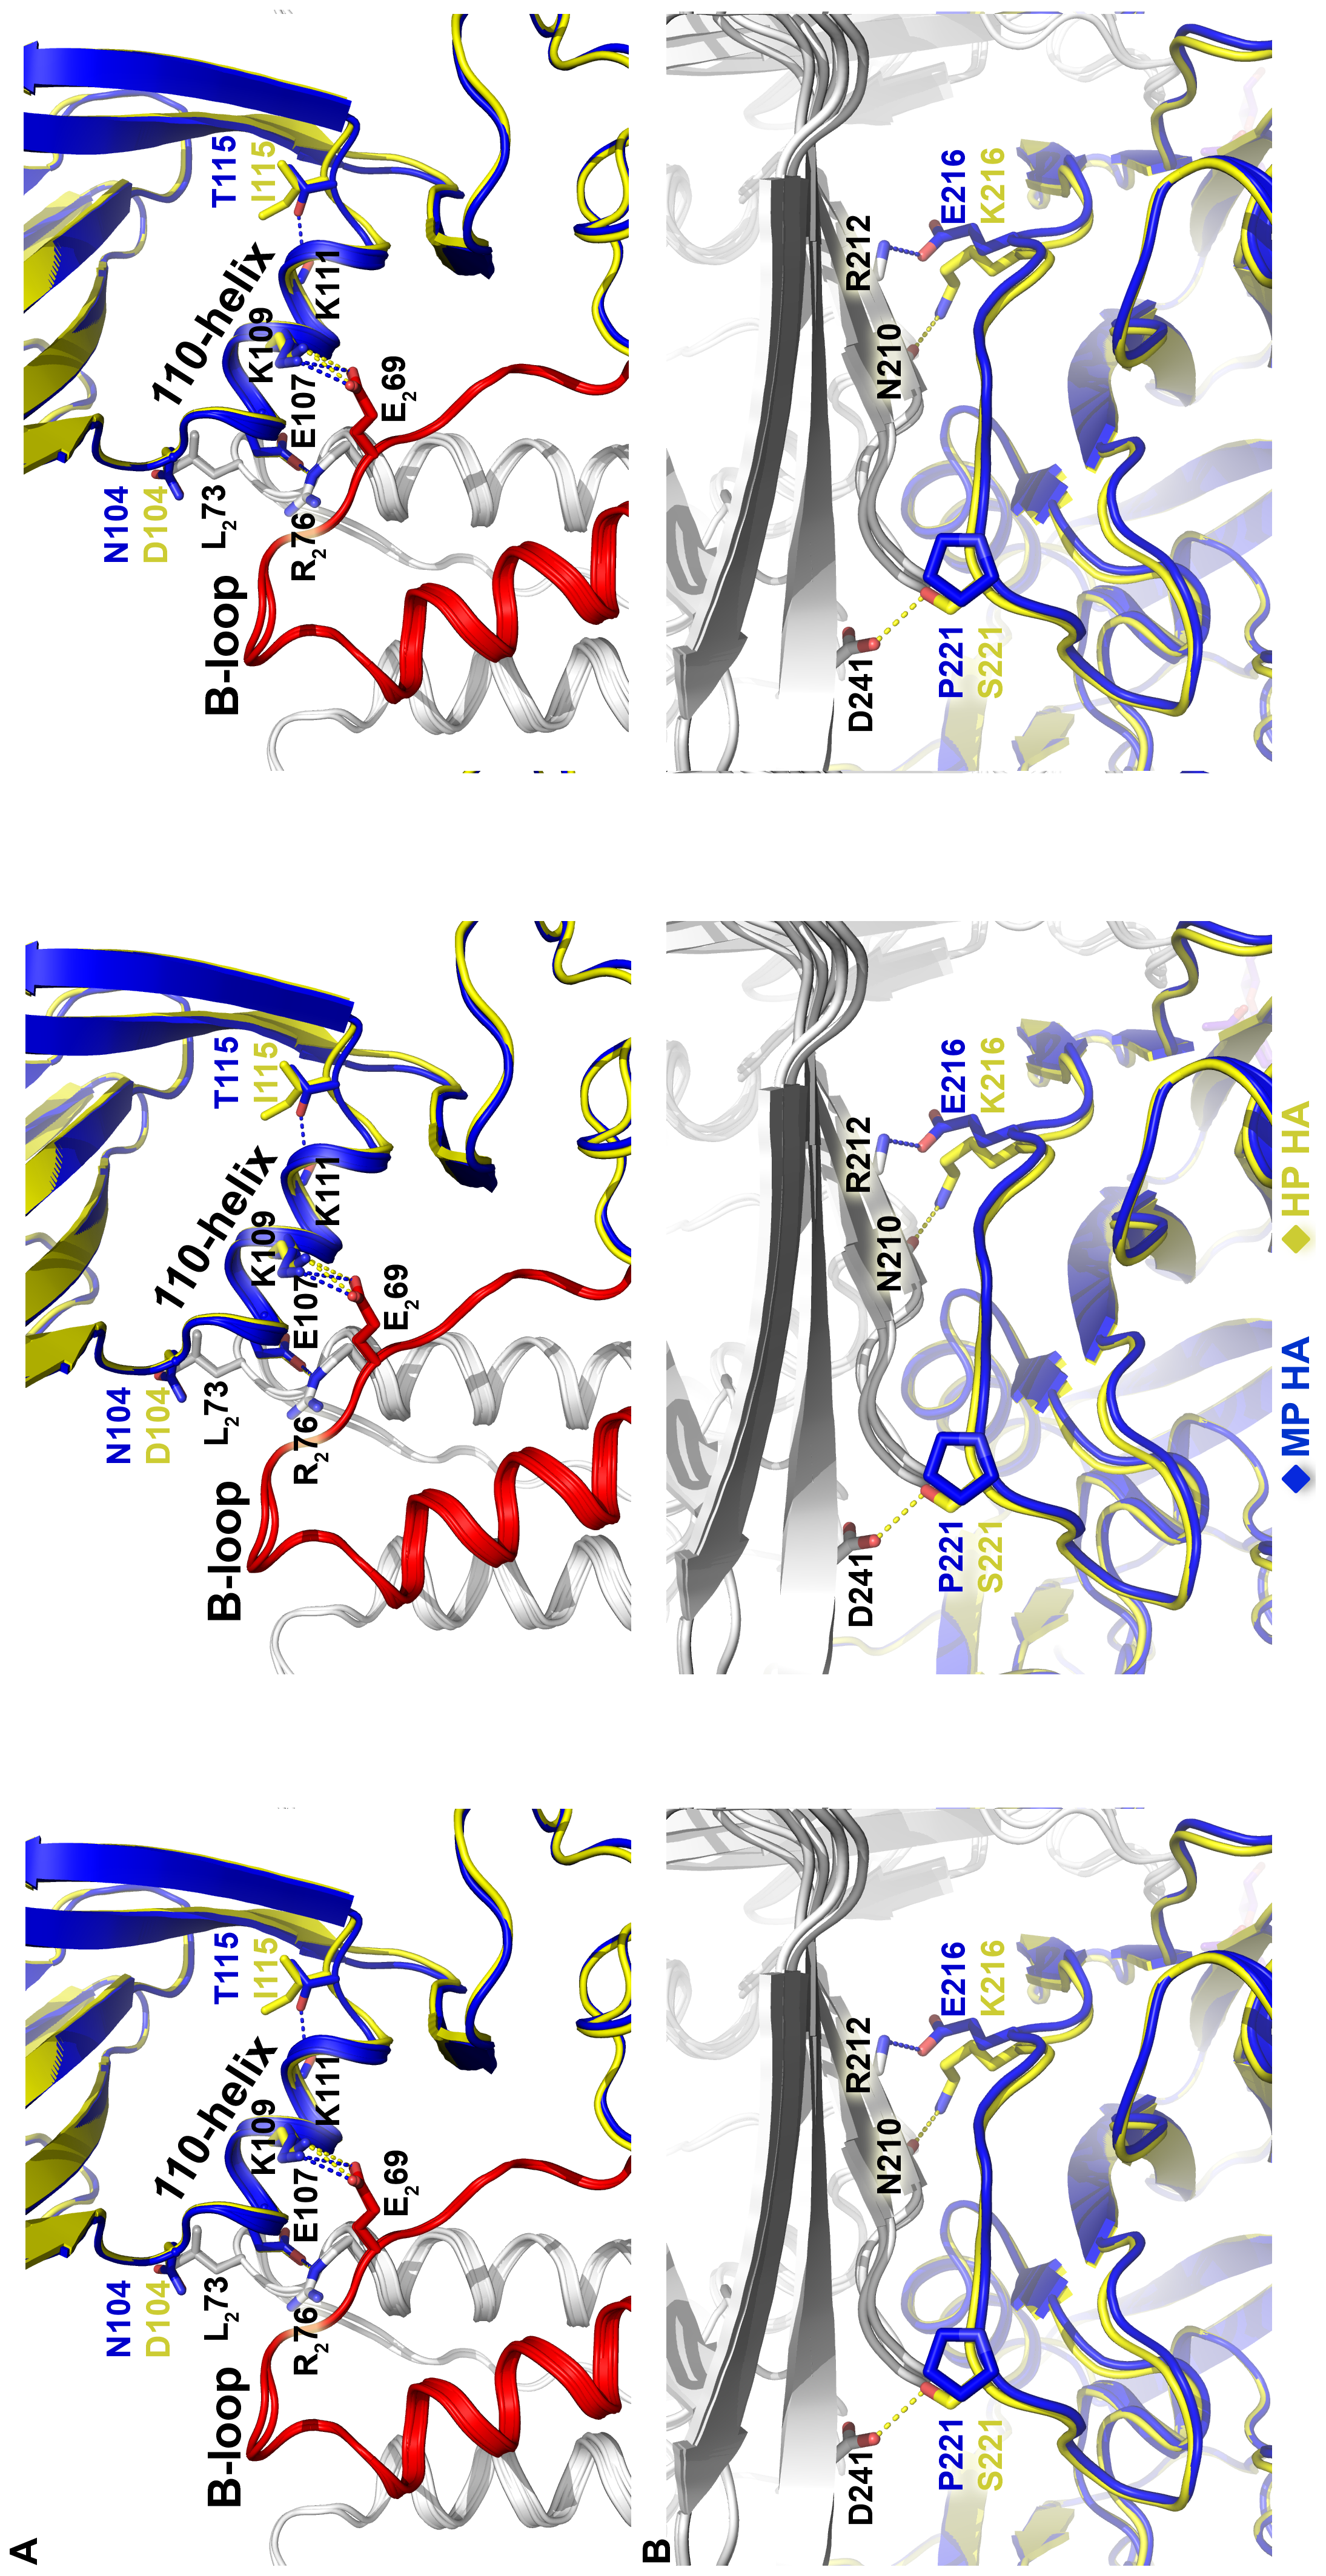 Structures at sites of sequence variation between the MP and HP HA proteins.